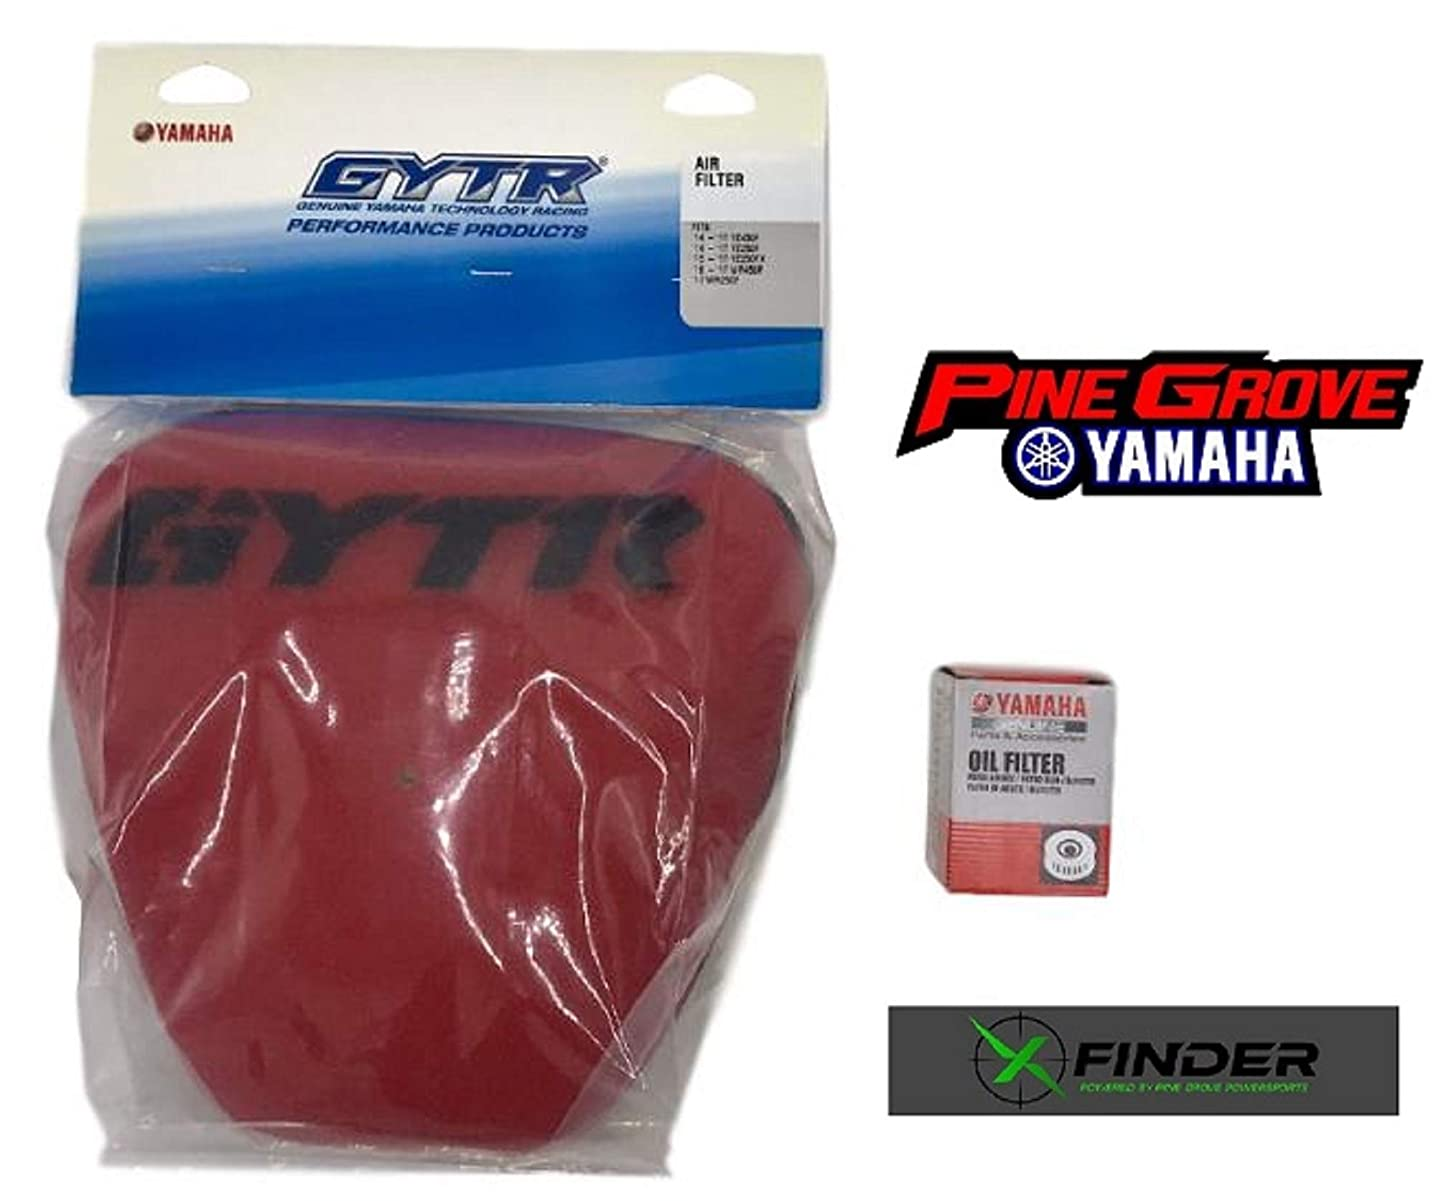 2014-2018 Yamaha YZ250F, 2014-2017 Yamaha YZ450F GYTR High-Flow Air filter with Genuine OEM Oil Filter, Includes X-Finder and Pine Grove Yamaha Stickers